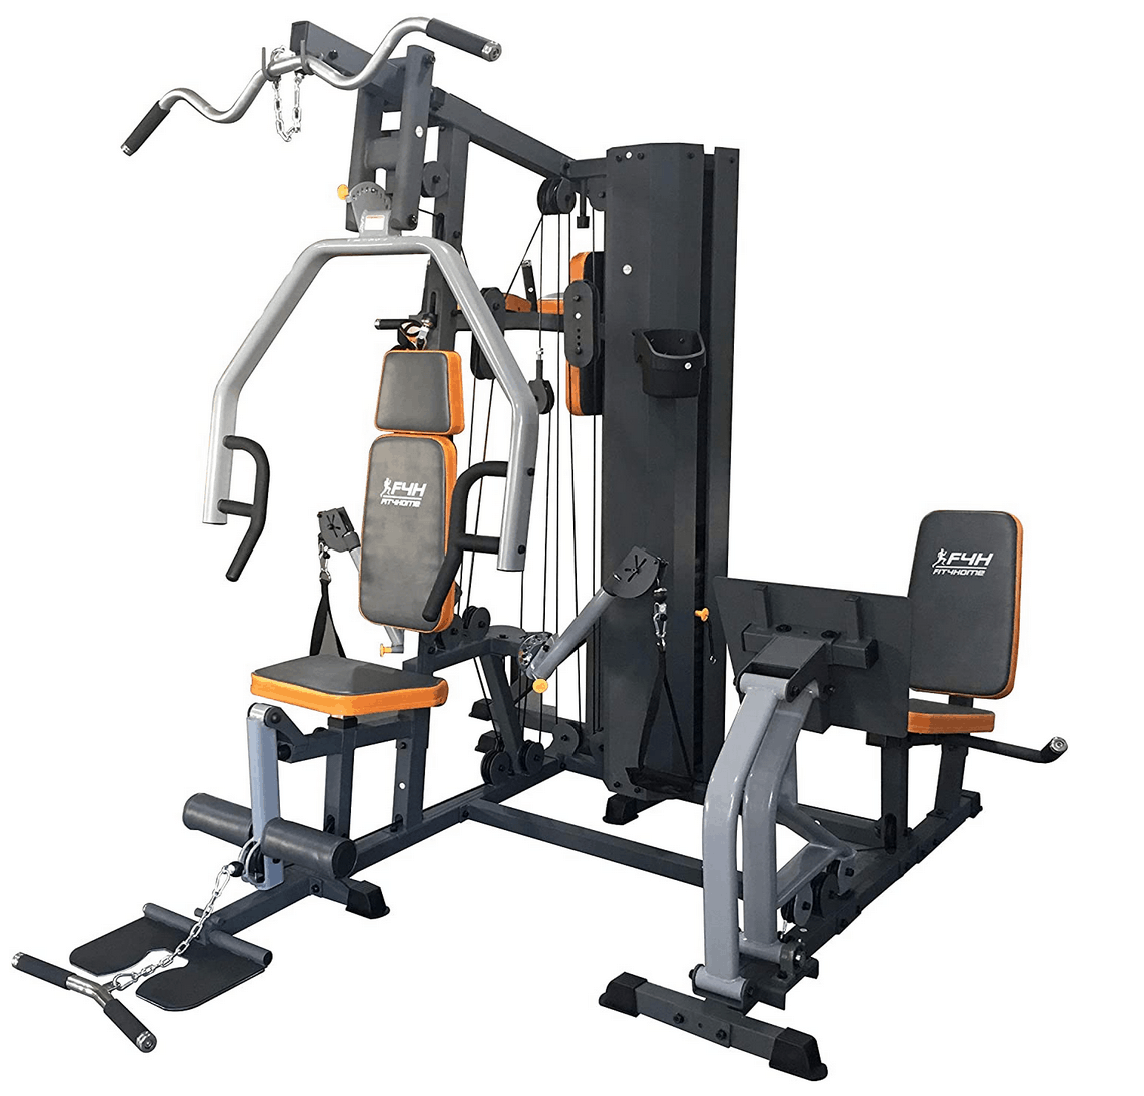 Fit4home TF-3003C Multi gym